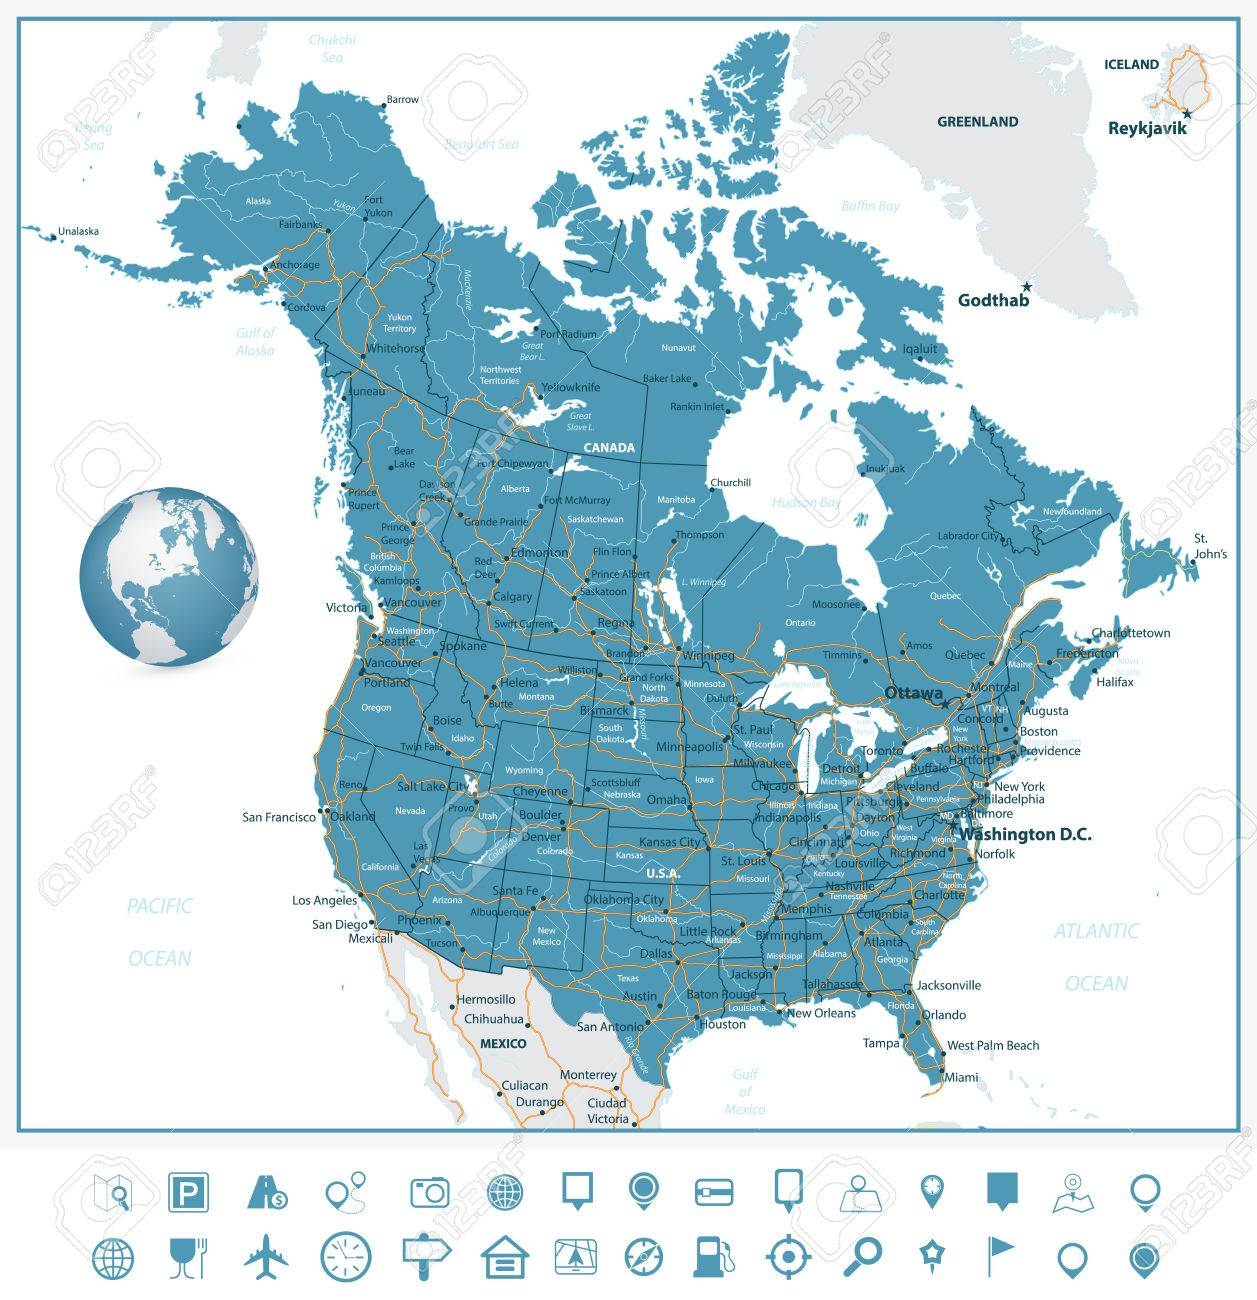 USA And Canada Road Map And Navigation Icons With States - Map of usa and canada with cities